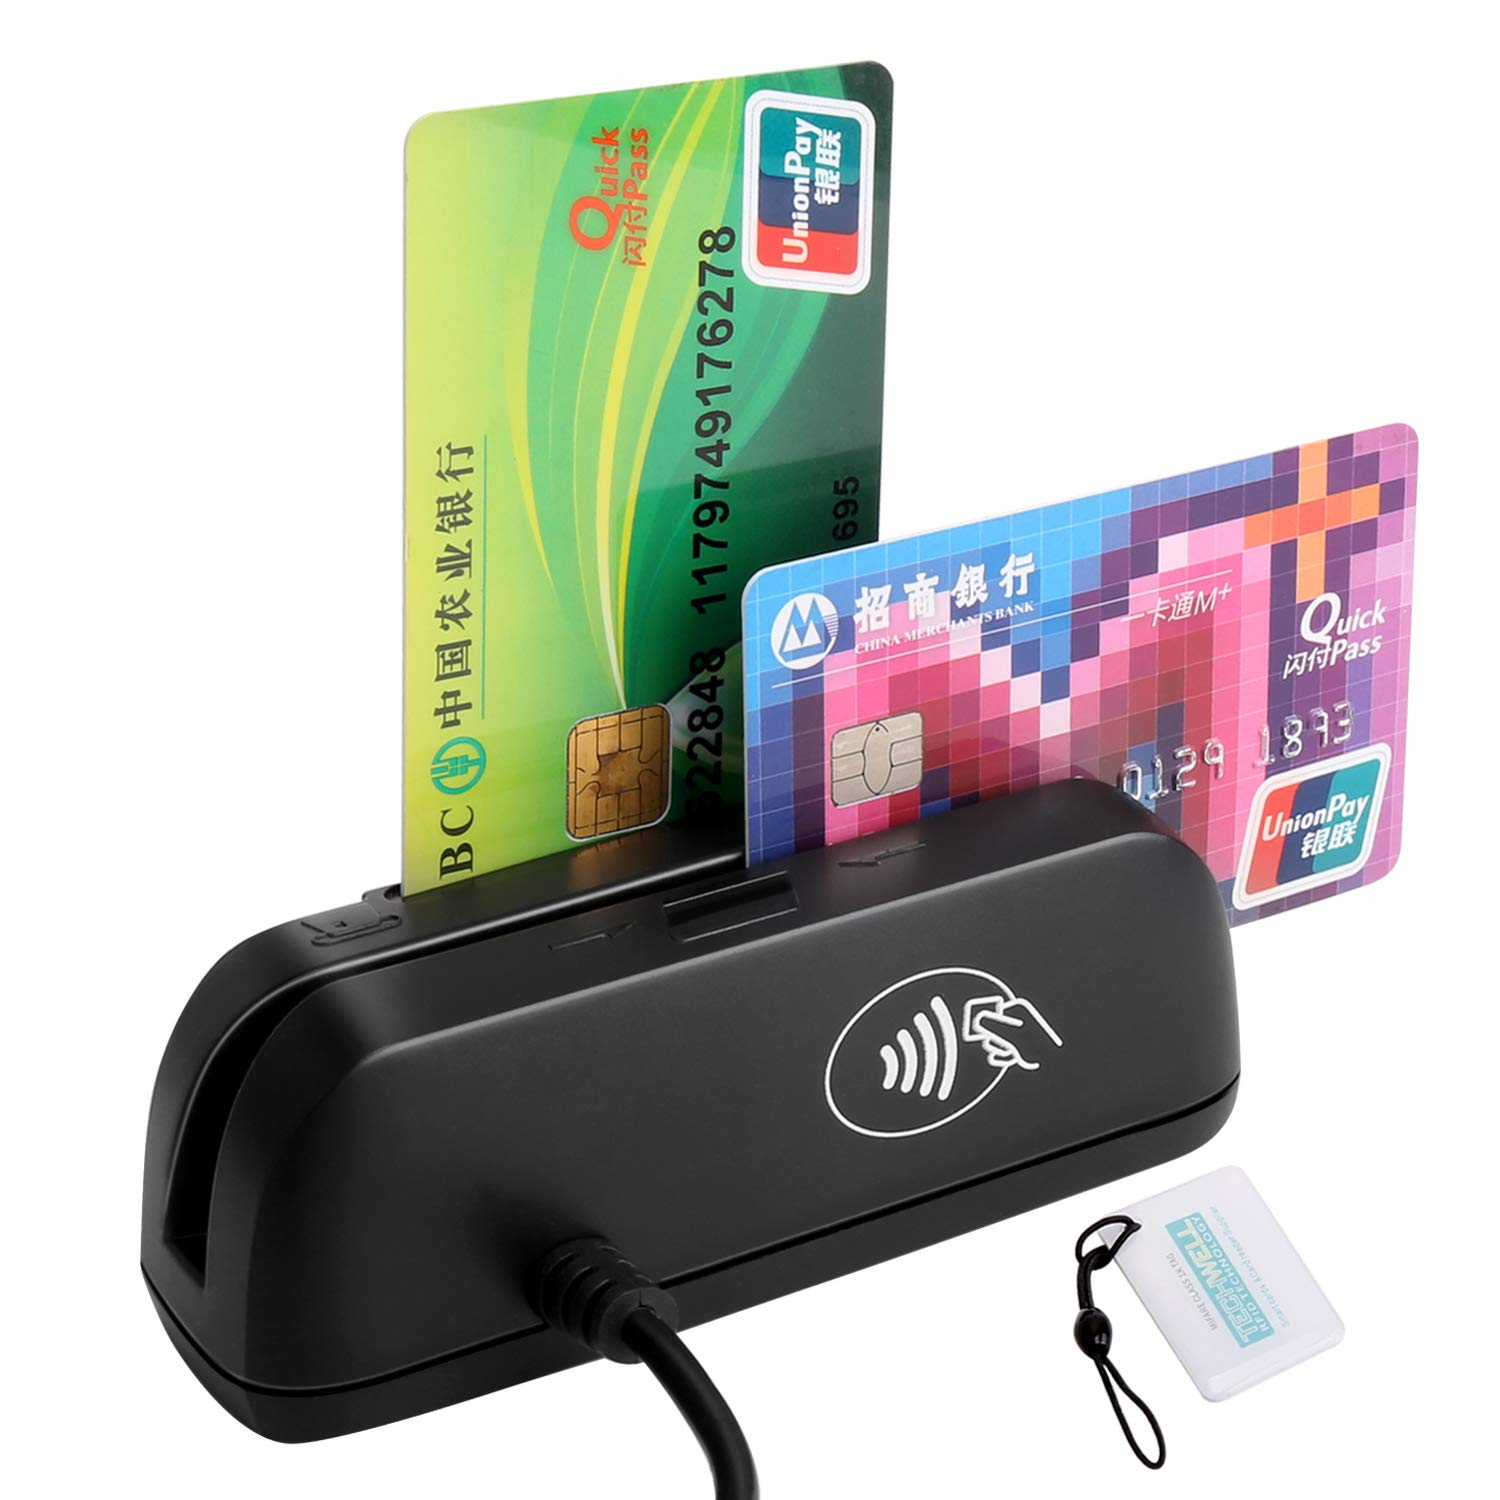 3 in 1 Combo SZTW150 Magnetic Card Reader + EMV Chip/RFID NFC Reader Writer Only for APDU Command Professional Person